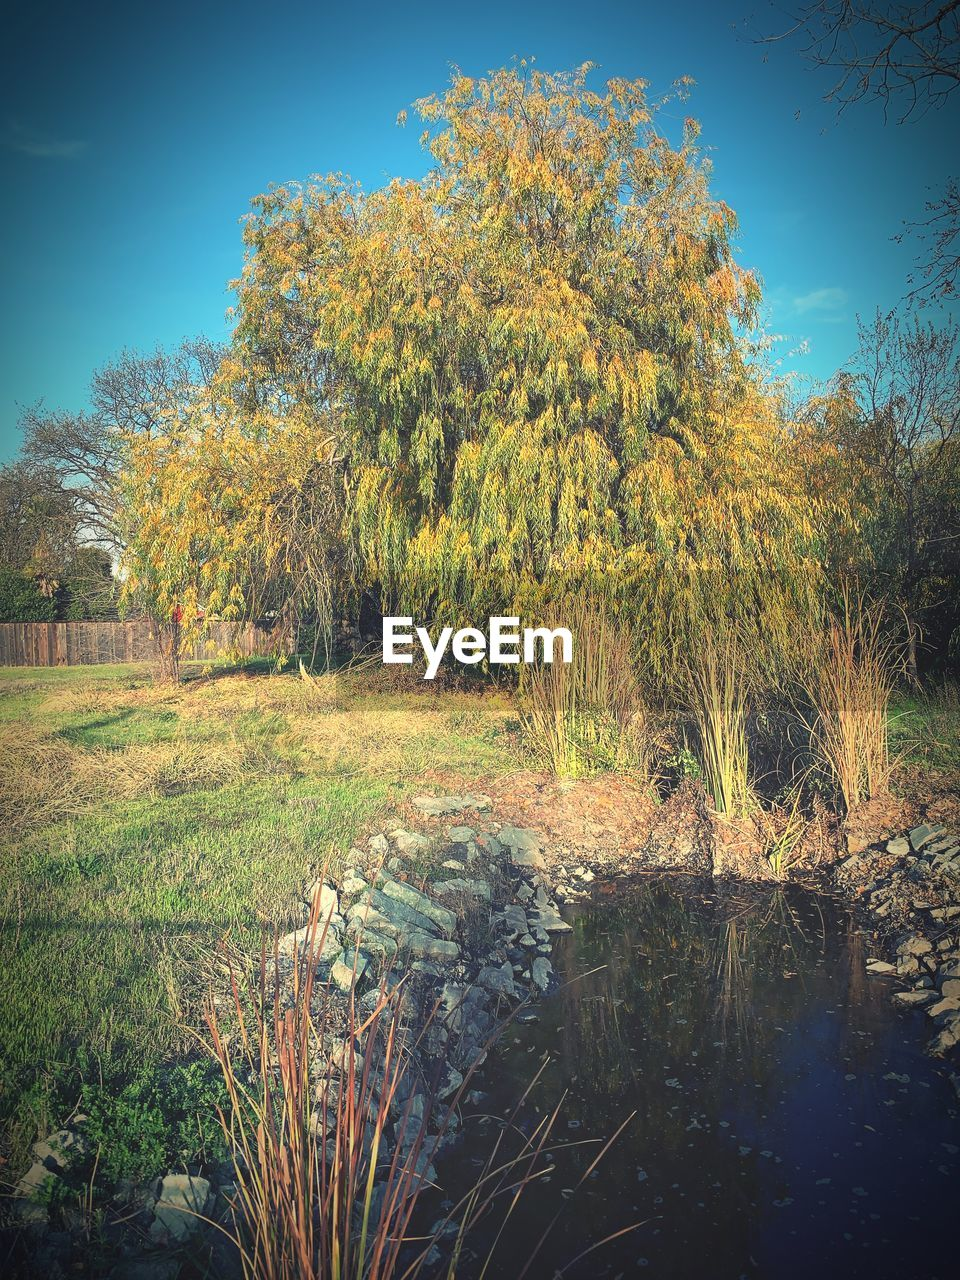 plant, sky, tree, beauty in nature, tranquility, tranquil scene, growth, nature, scenics - nature, no people, day, land, environment, grass, field, landscape, non-urban scene, water, outdoors